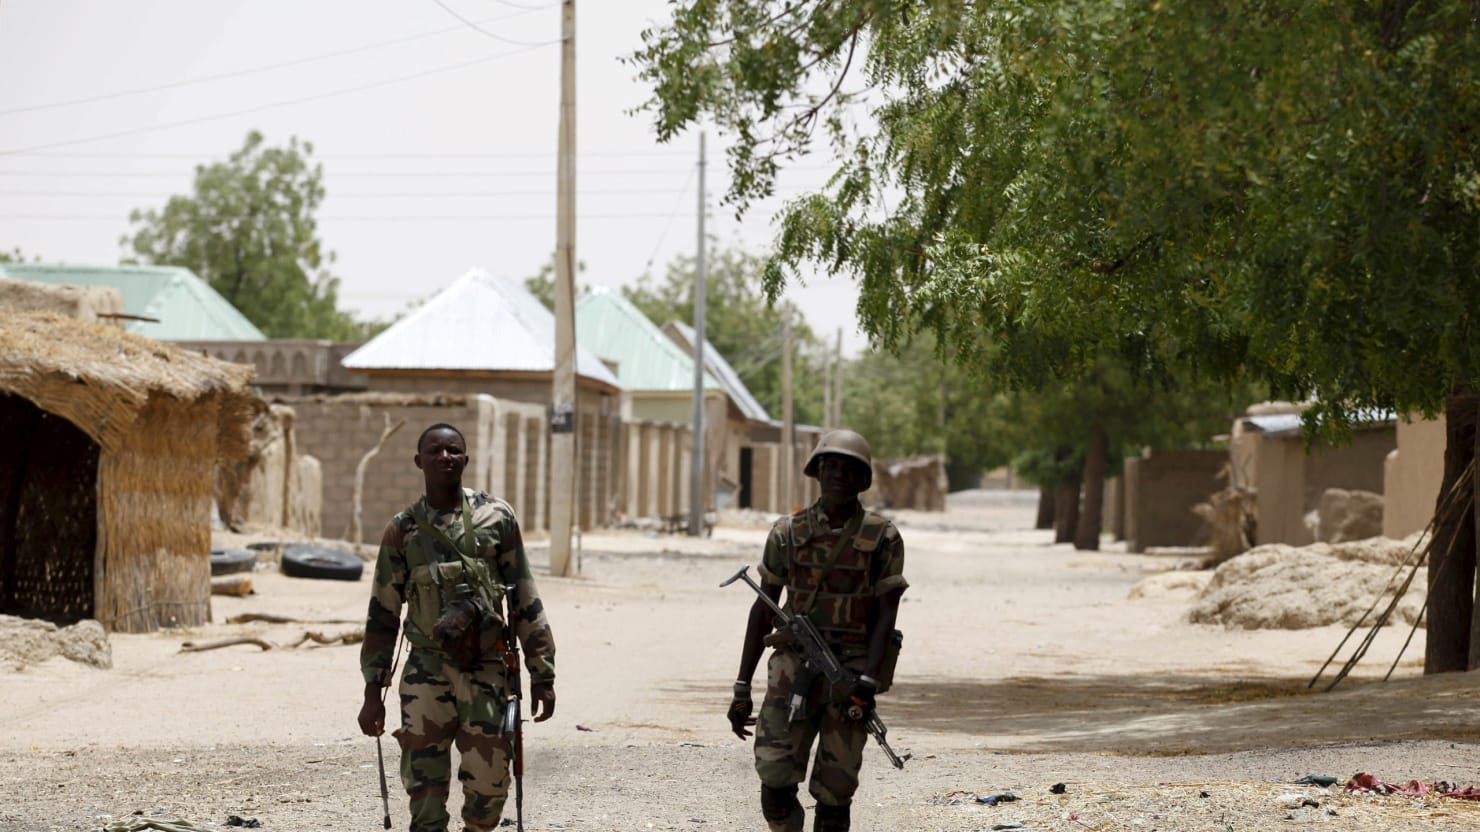 Nigeria's Government Turns Its Back on Boko Haram Victims